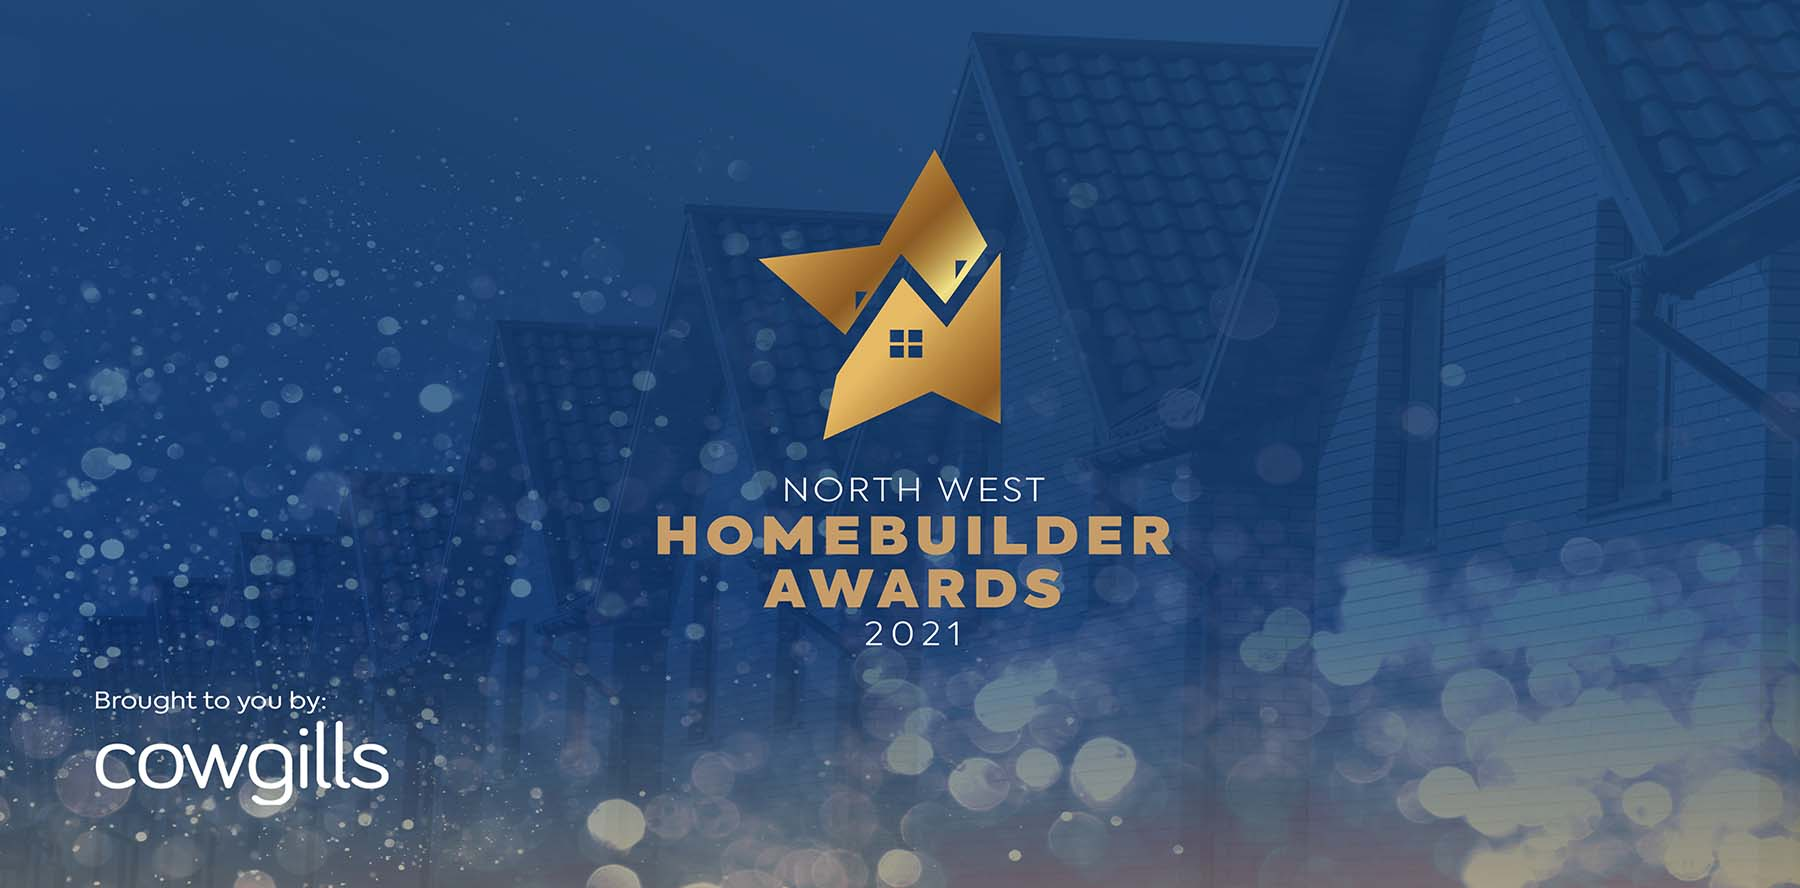 Cowgills Launches North West Homebuilder Awards